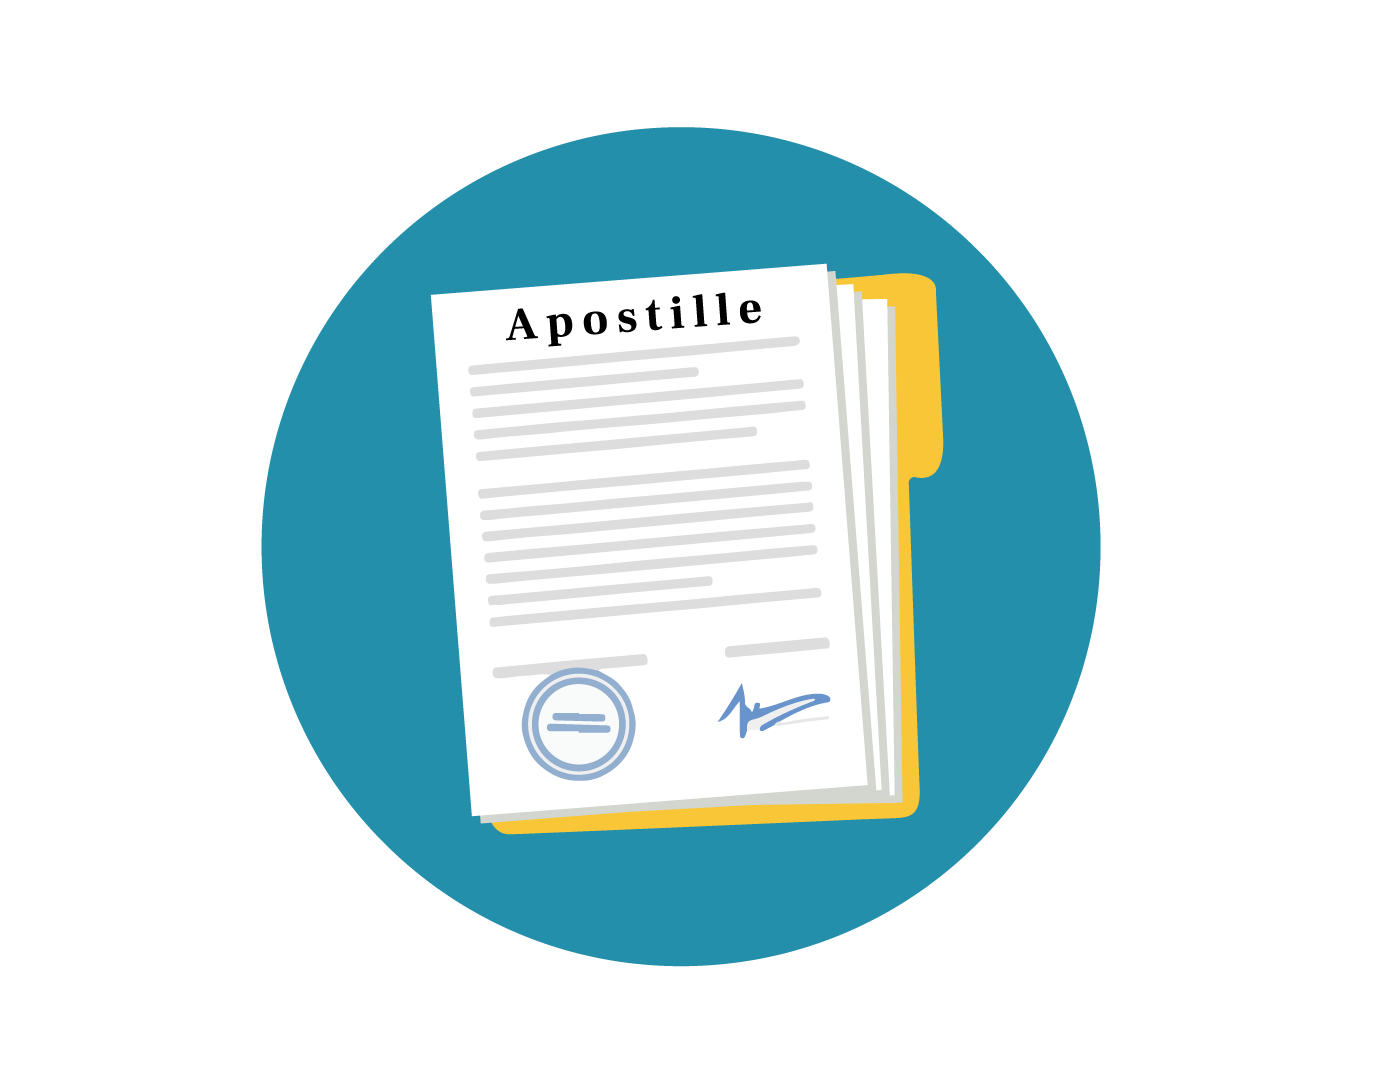 The advantages of having a highly trusted Apostille service post thumbnail image